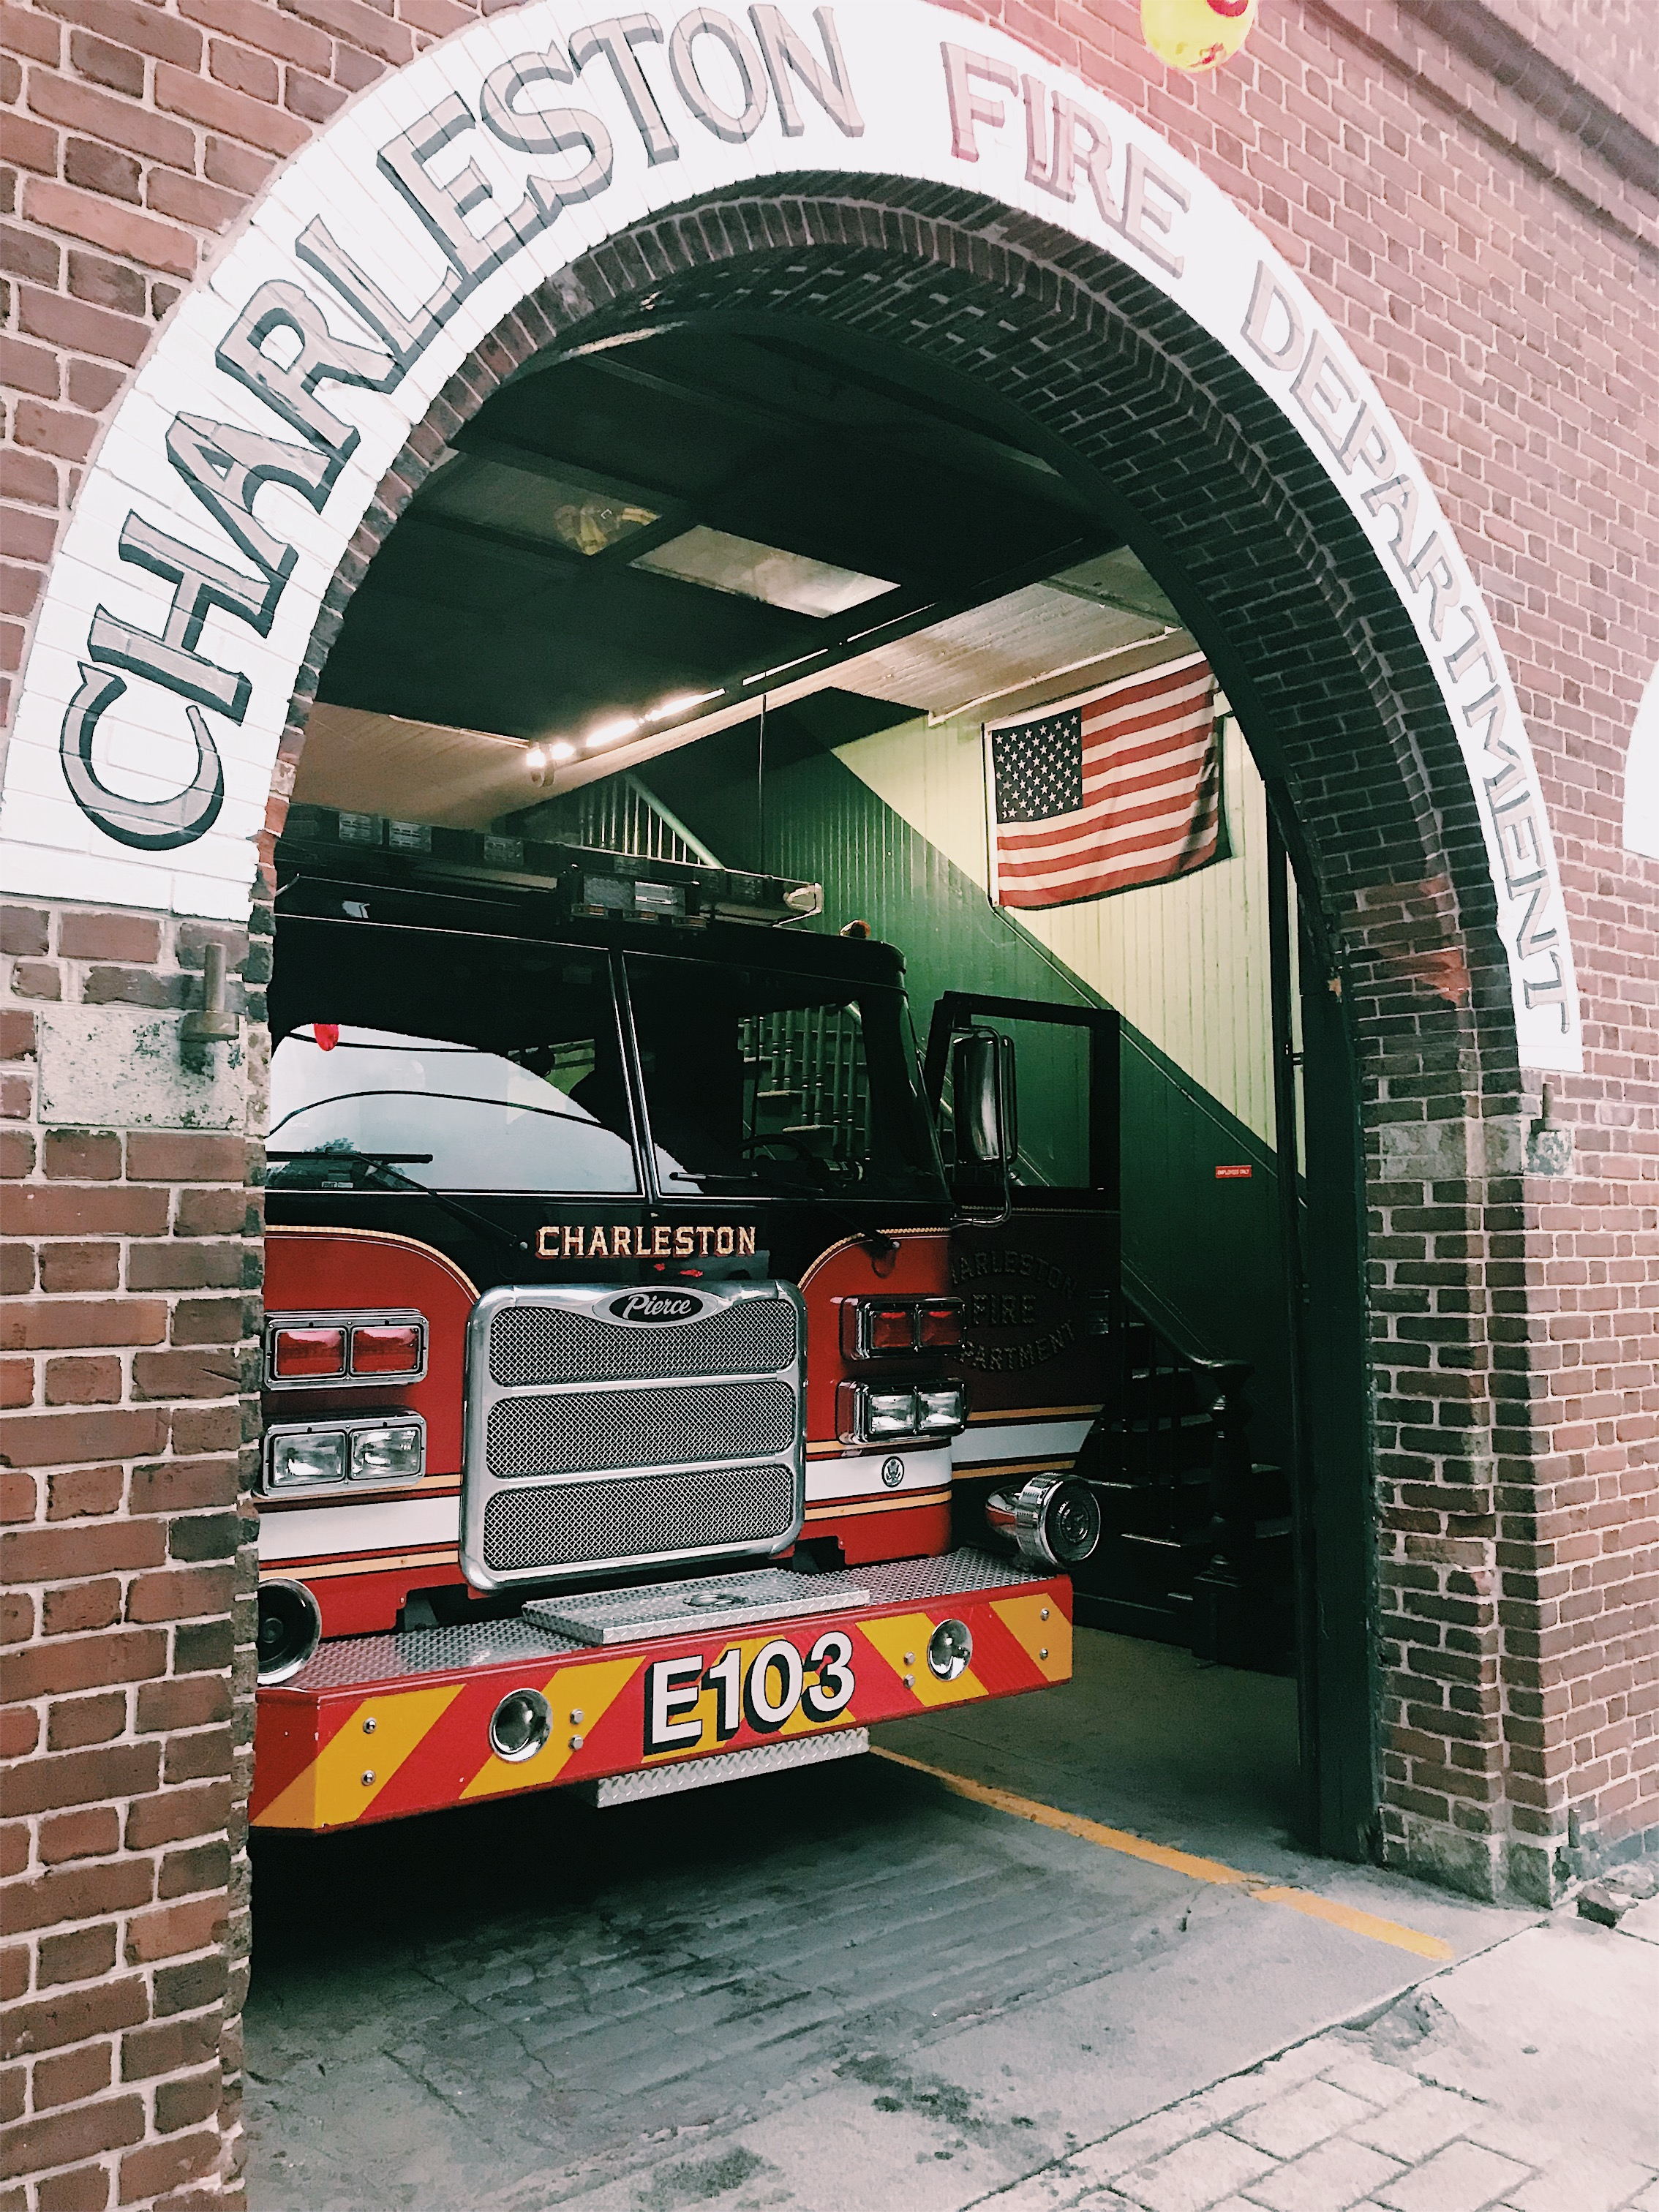 charleston fire station